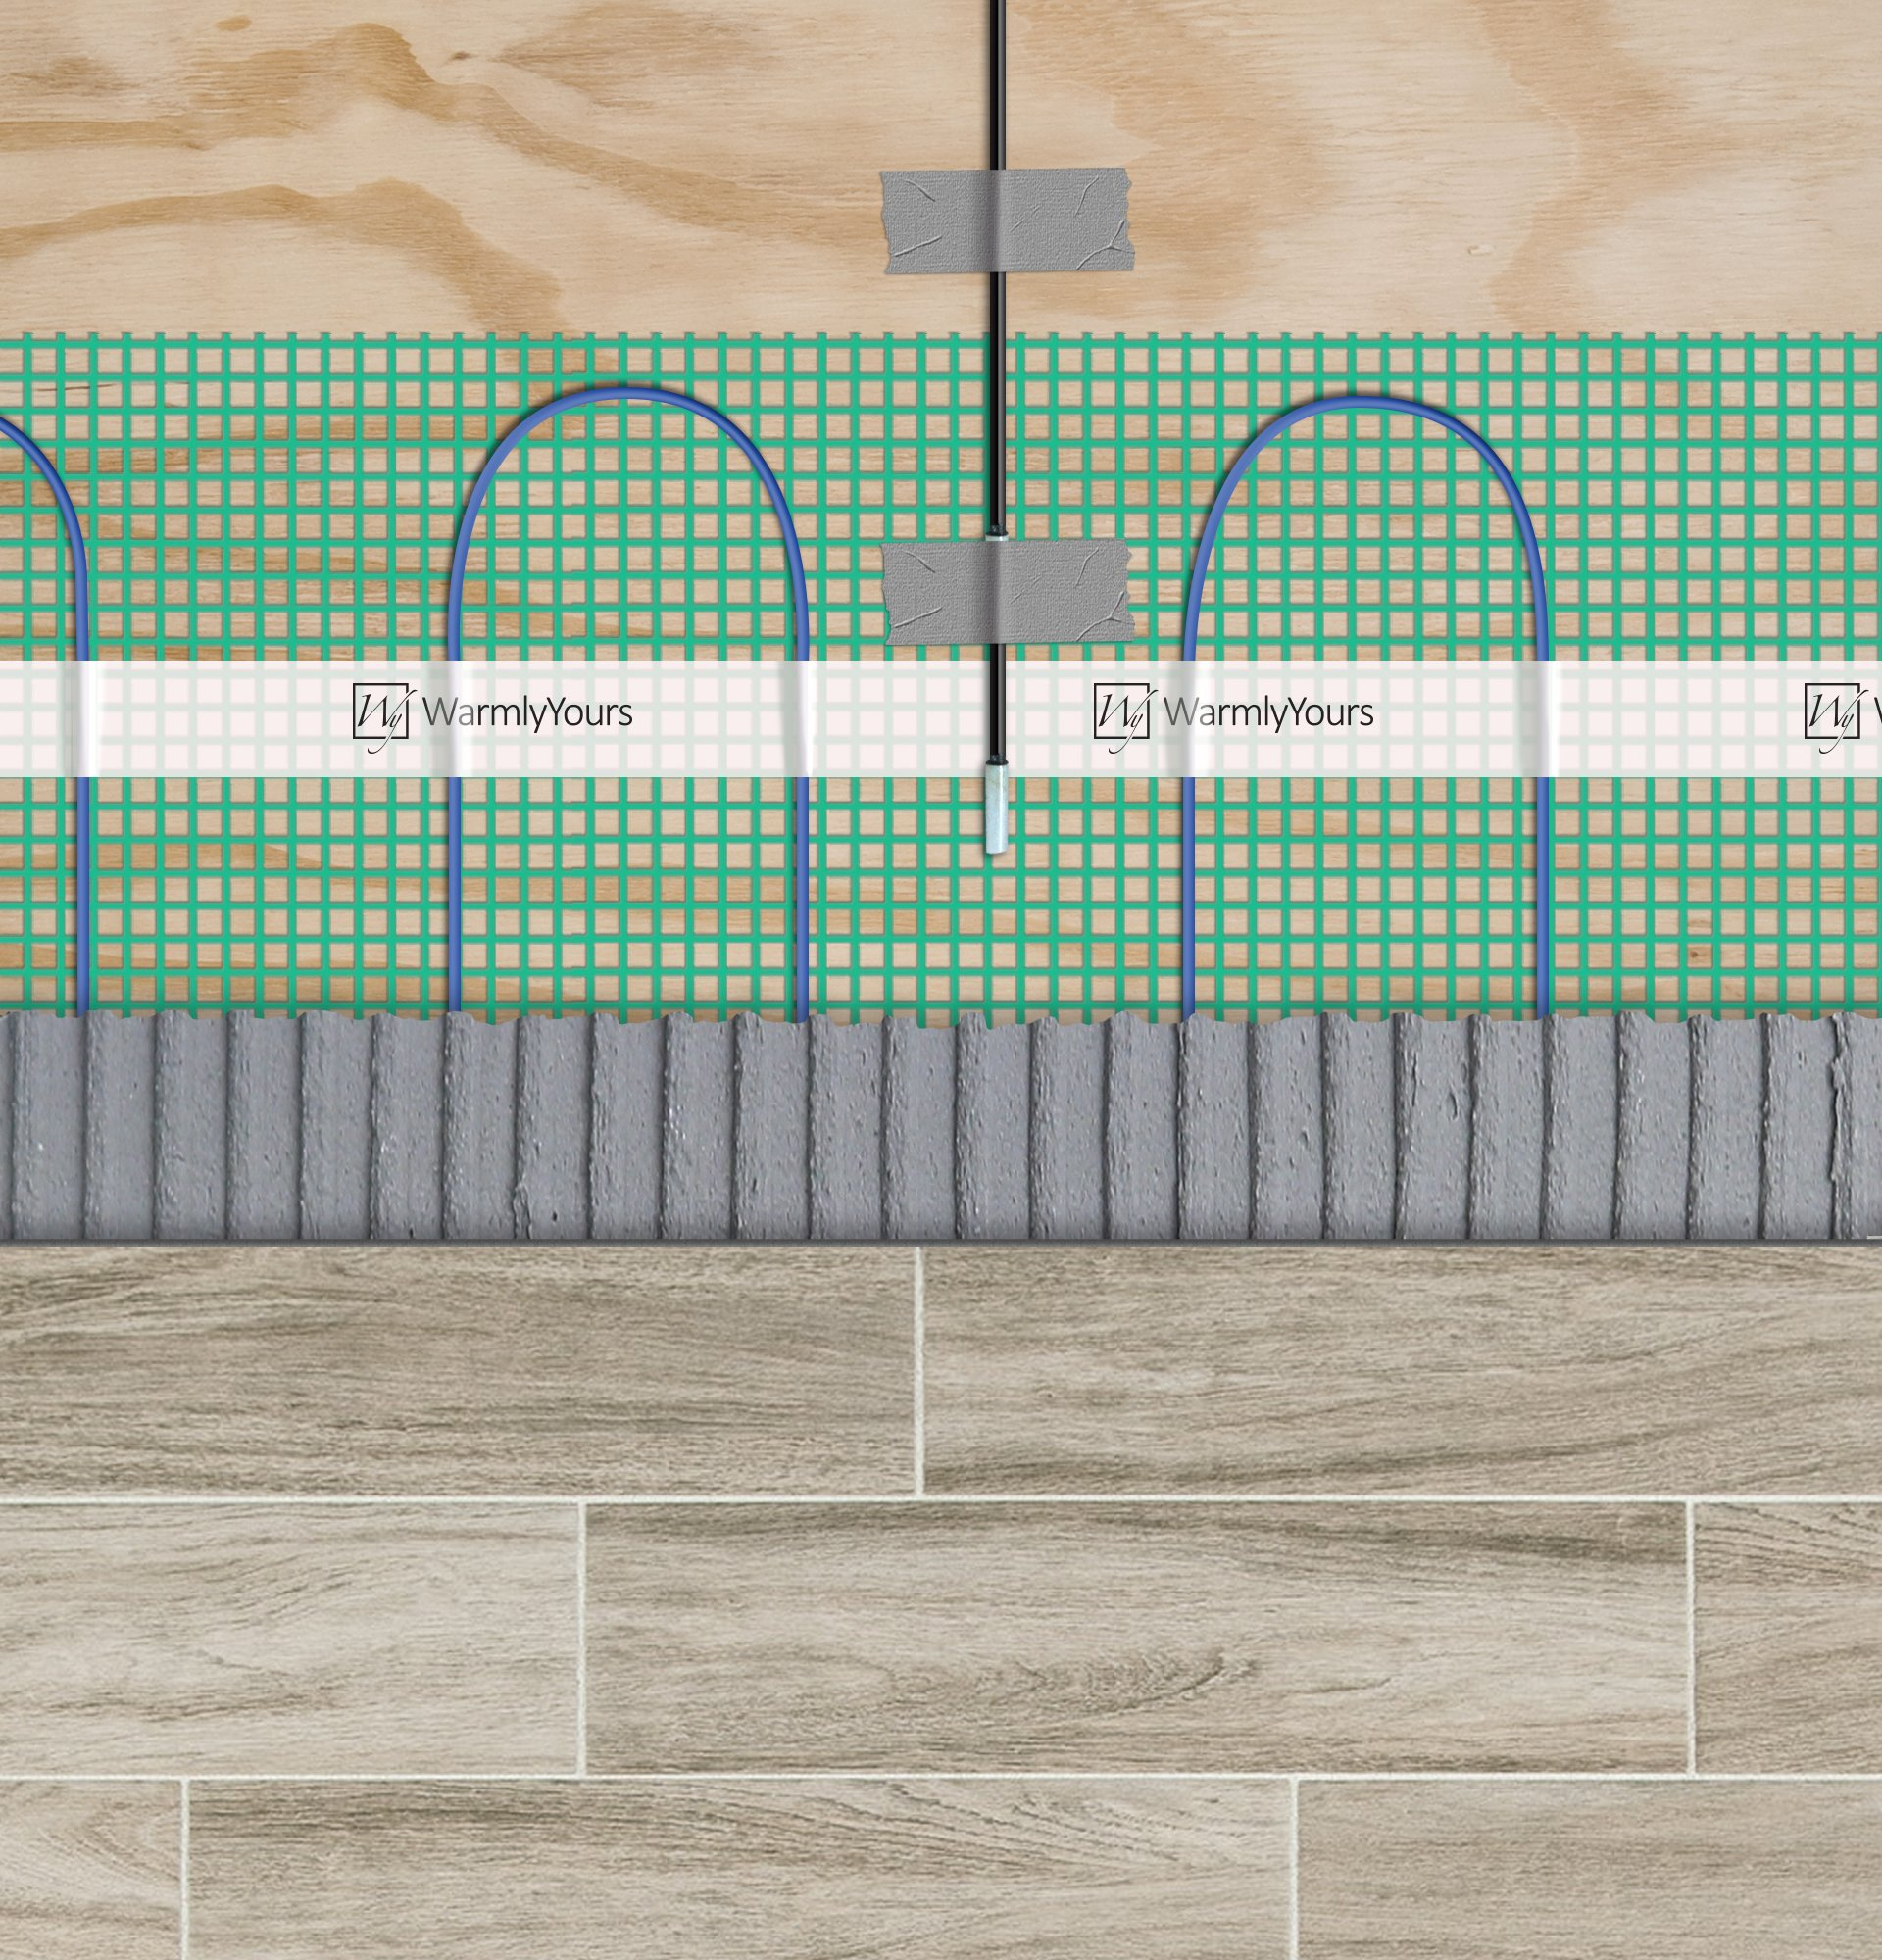 How to Install Floor Heating under Tile | WarmlyYours